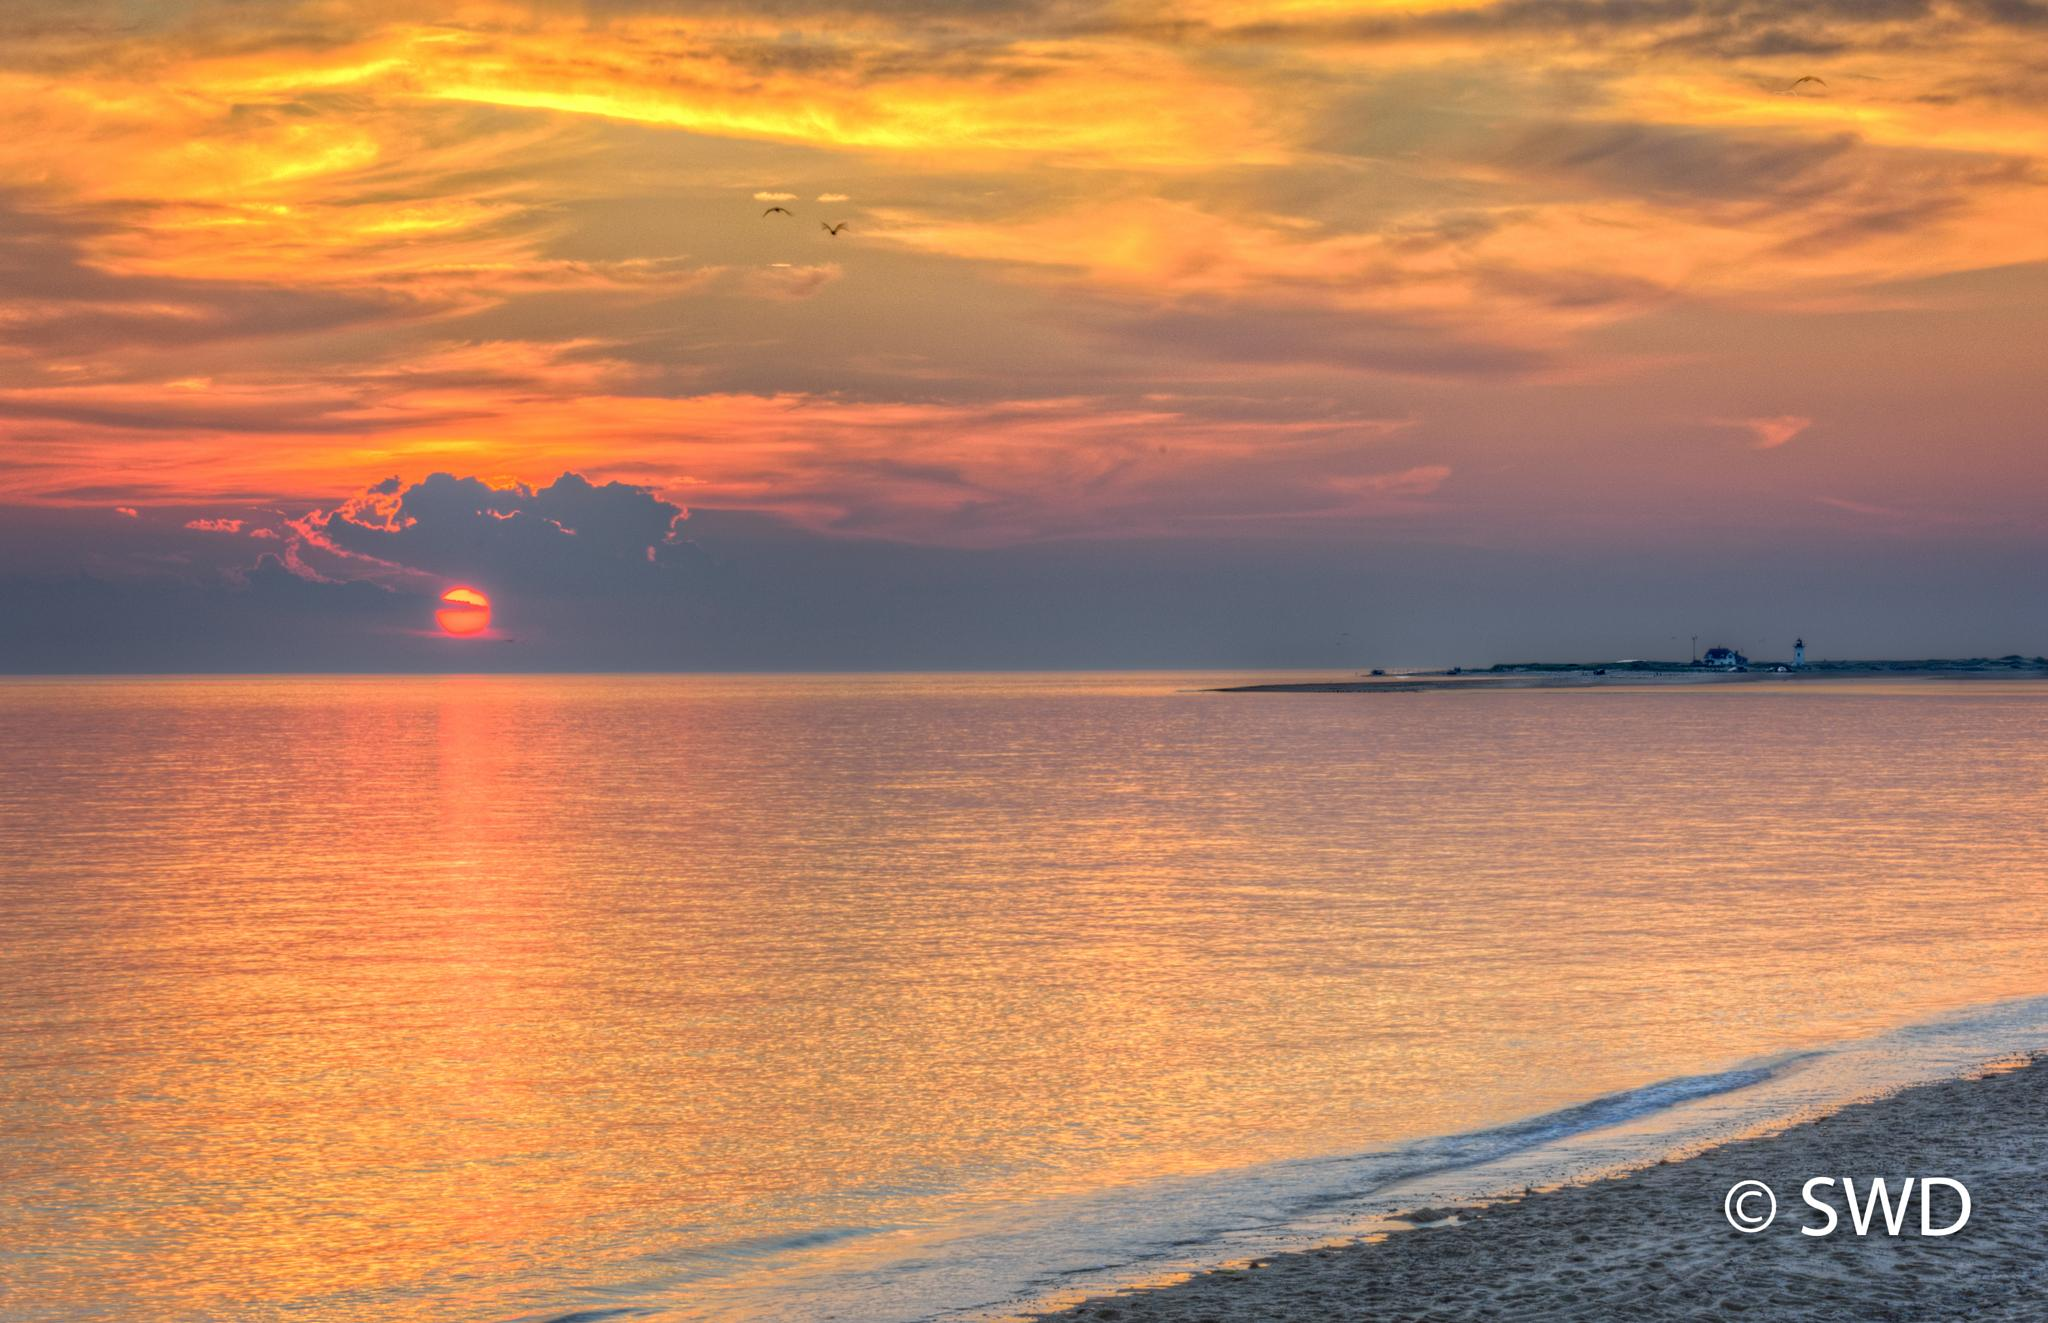 Race Point Lighthouse at Sunset as seen from Herring Cove Beach by Steve Director